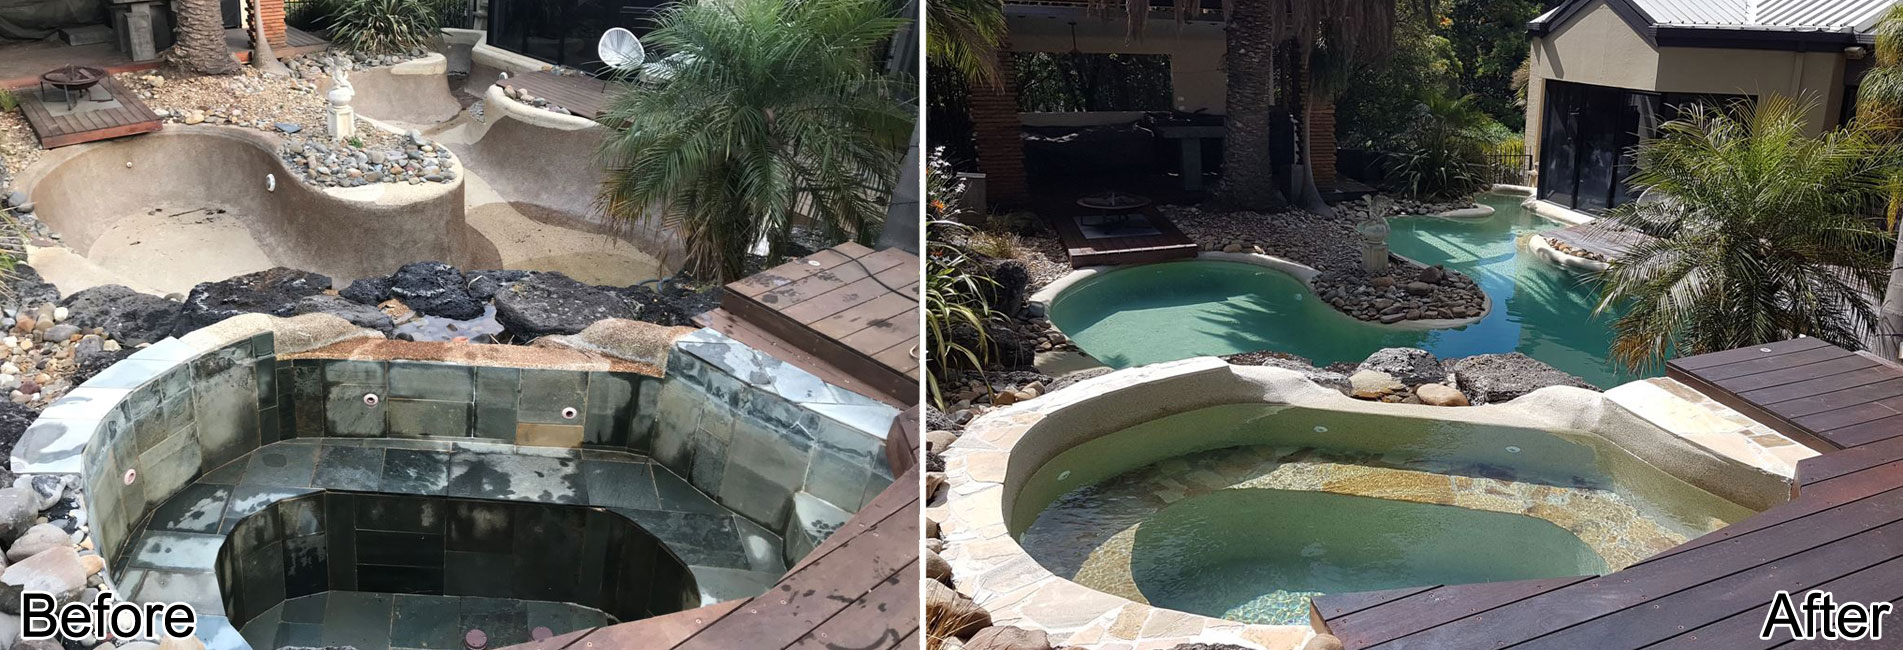 Pool Services Dandenong, Pool Builders Seaford, Fix Pool Filters Berwick, Pool Repairs Melbourne